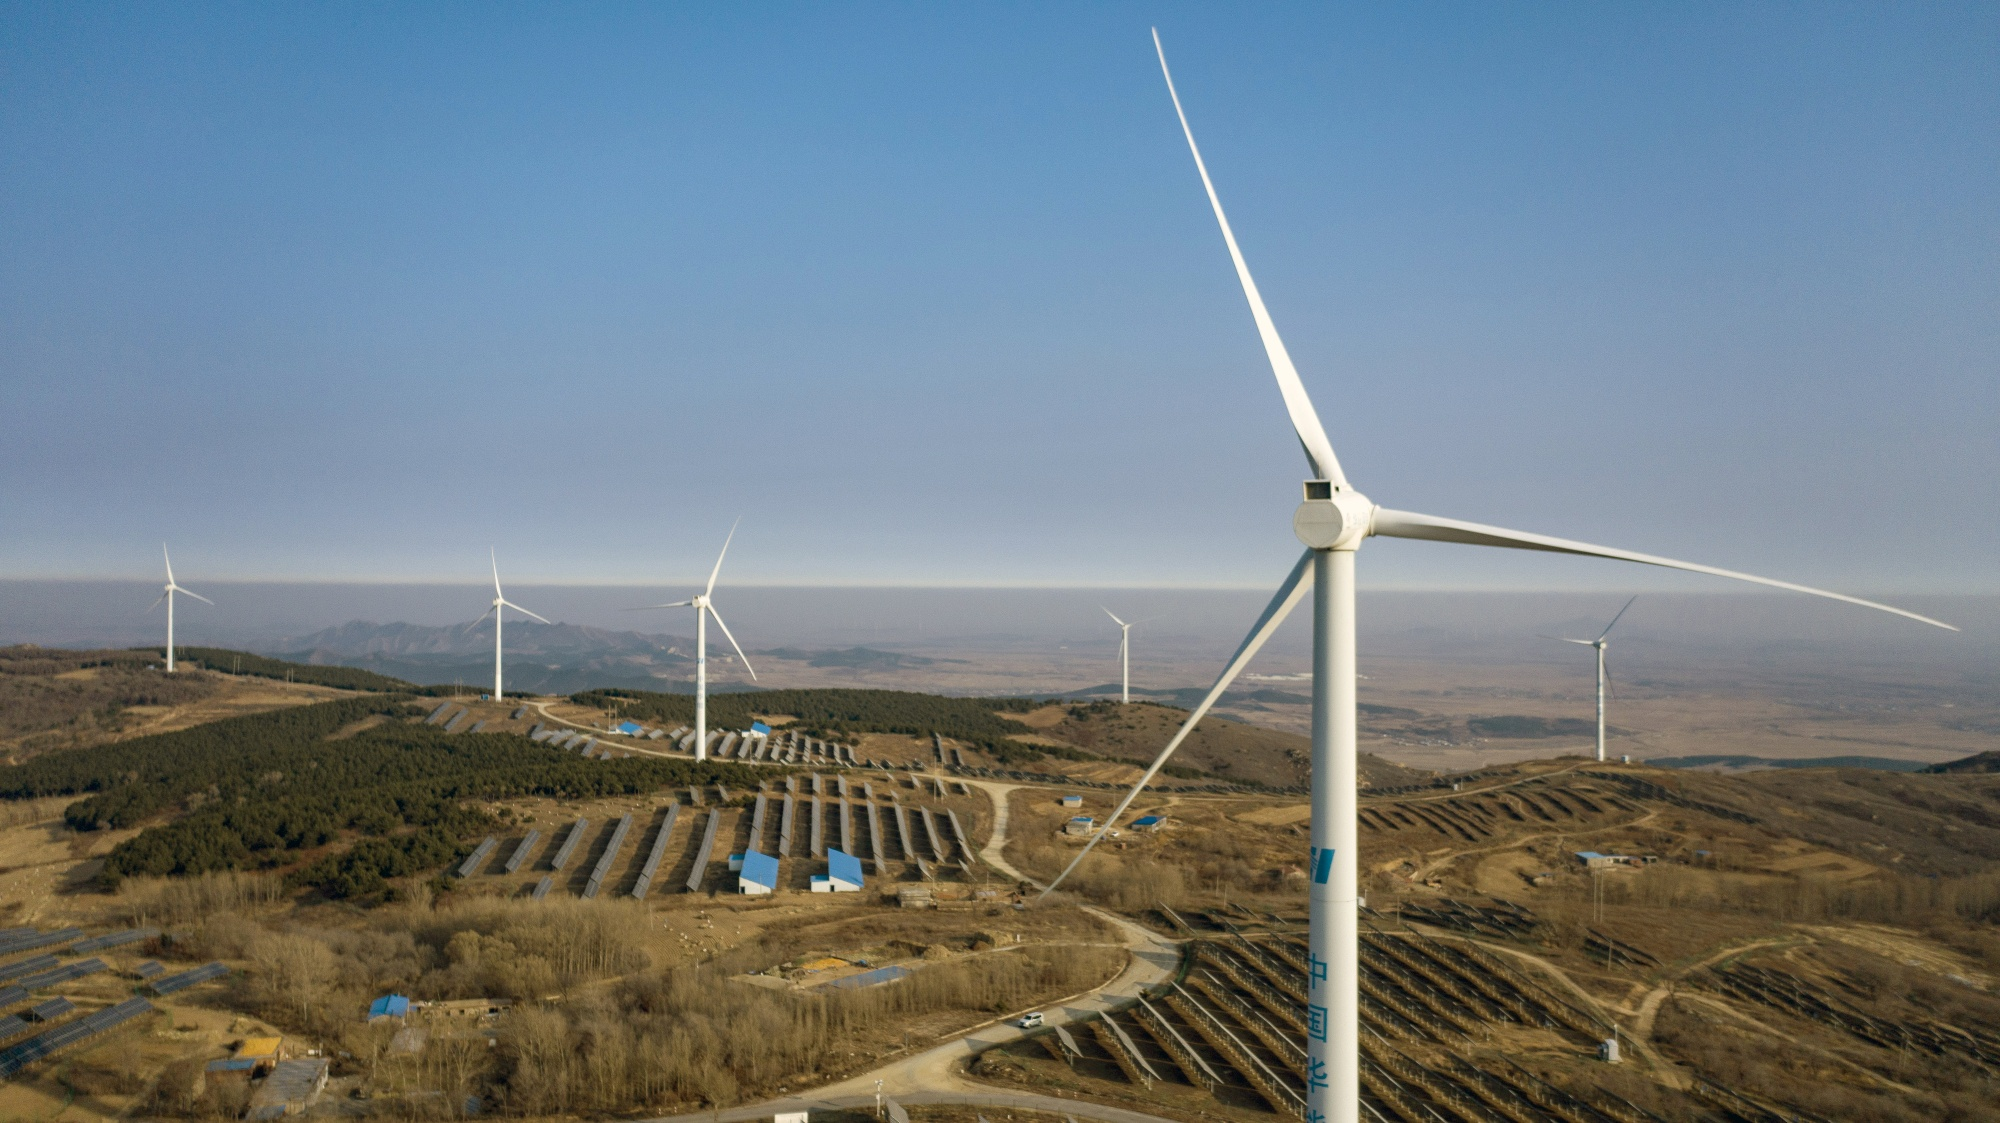 Wind turbines and solar panels in this aerial photograph taken near Fuxin, China, onNov. 16, 2020.